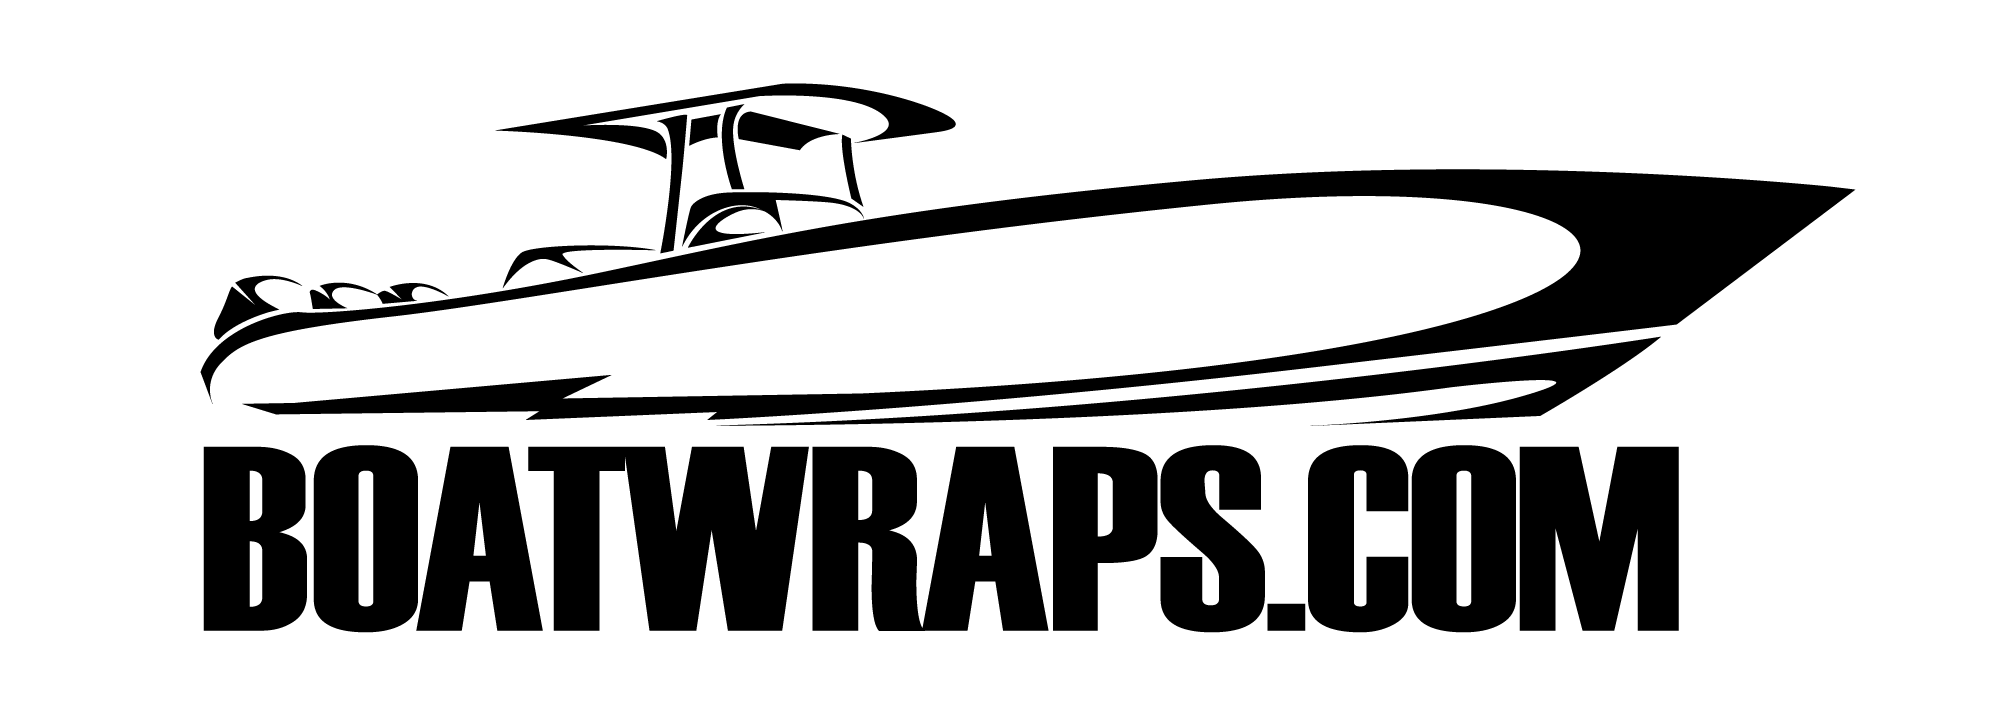 boat-wrap-estimate